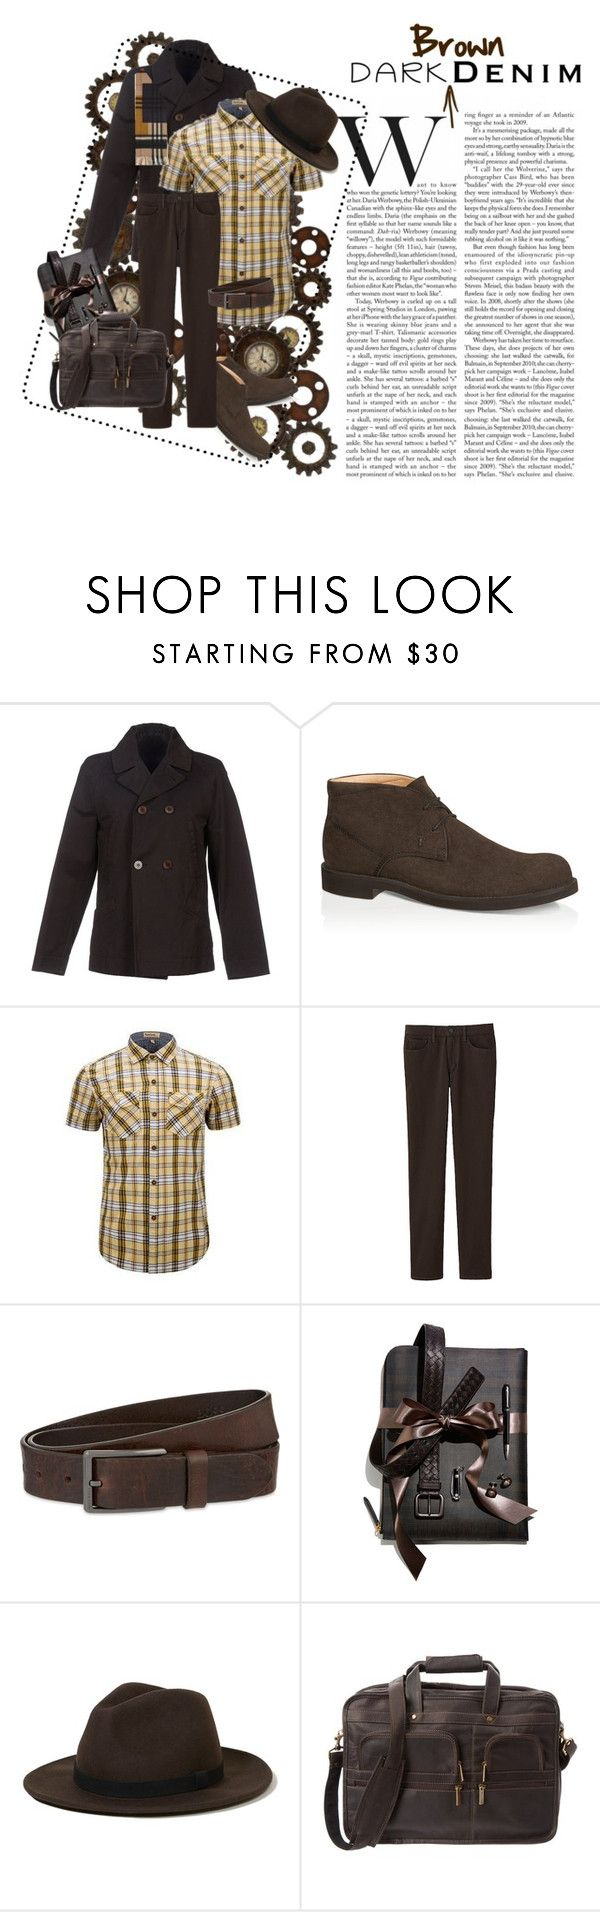 Dark Brown Denim by bella0678 on Polyvore featuring Uniqlo, M.GRIFONI DENIM, Tod's, Hollister Co., Dunhill, Burberry, HUGO, men's fashion, menswear and darkdenim